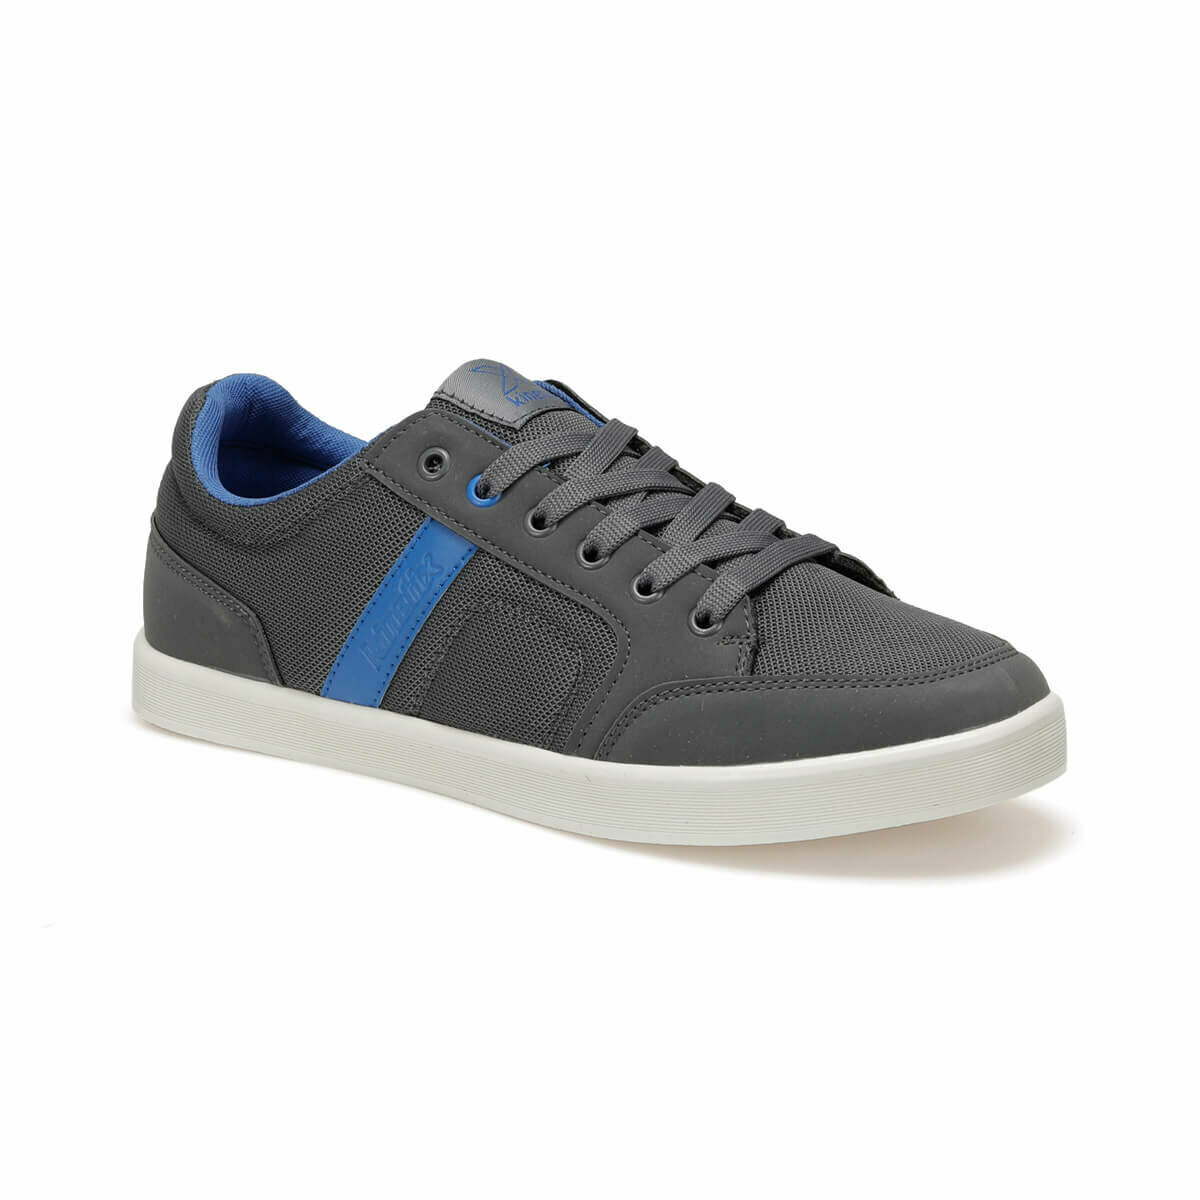 FLO KEYA TX M Gray Men 'S Sneaker Shoes KINETIX